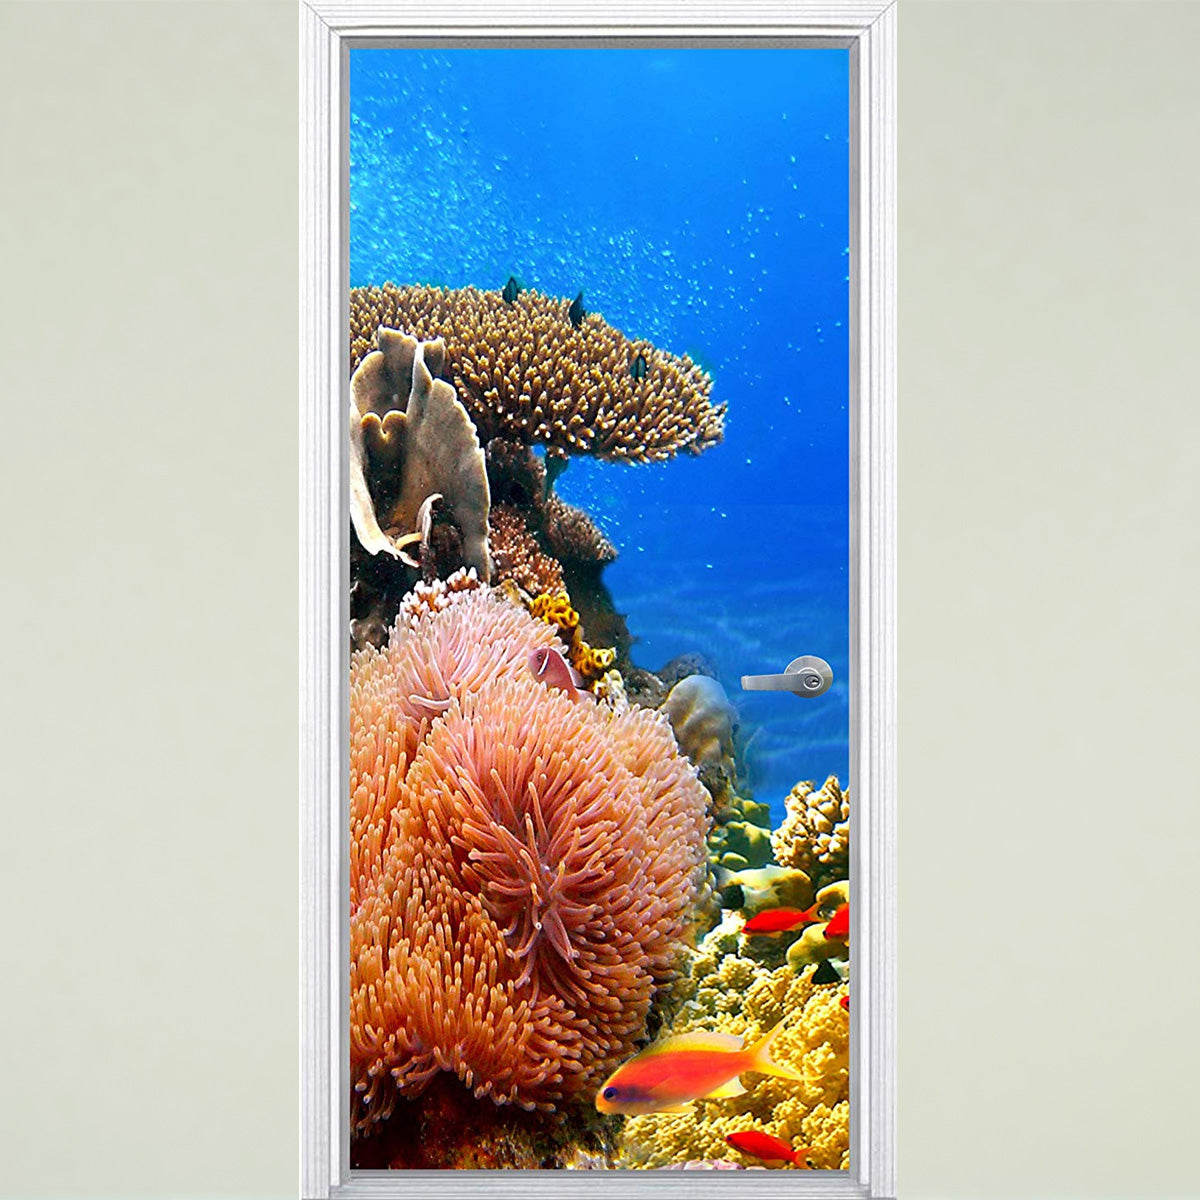 VWAQ Underwater Coral Reef Door Mural - Ocean Vinyl Fish Decal Decor - DM7